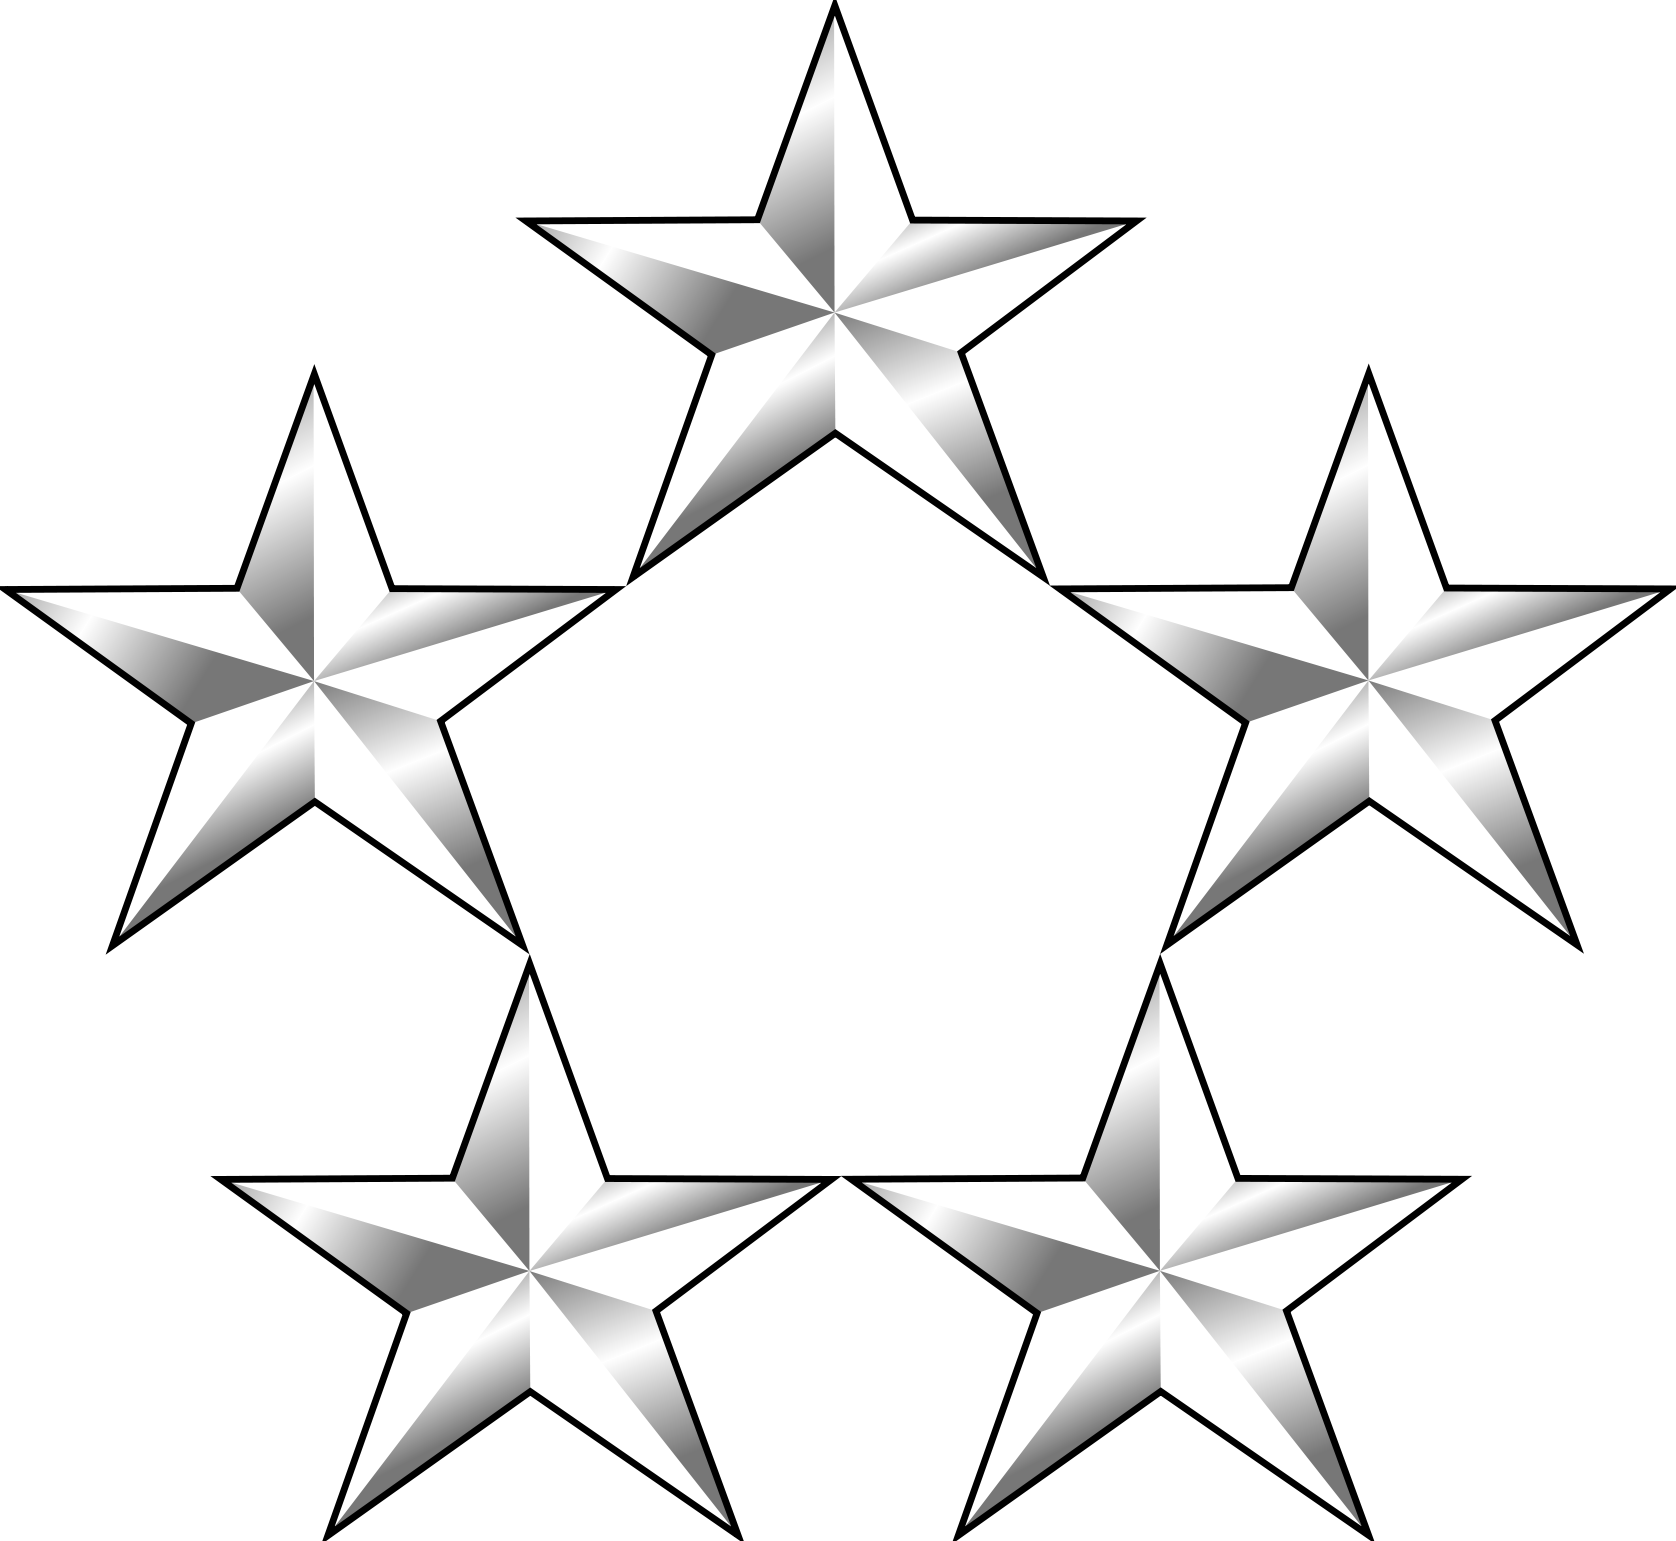 File:5 Star.png - Wikimedia Commons